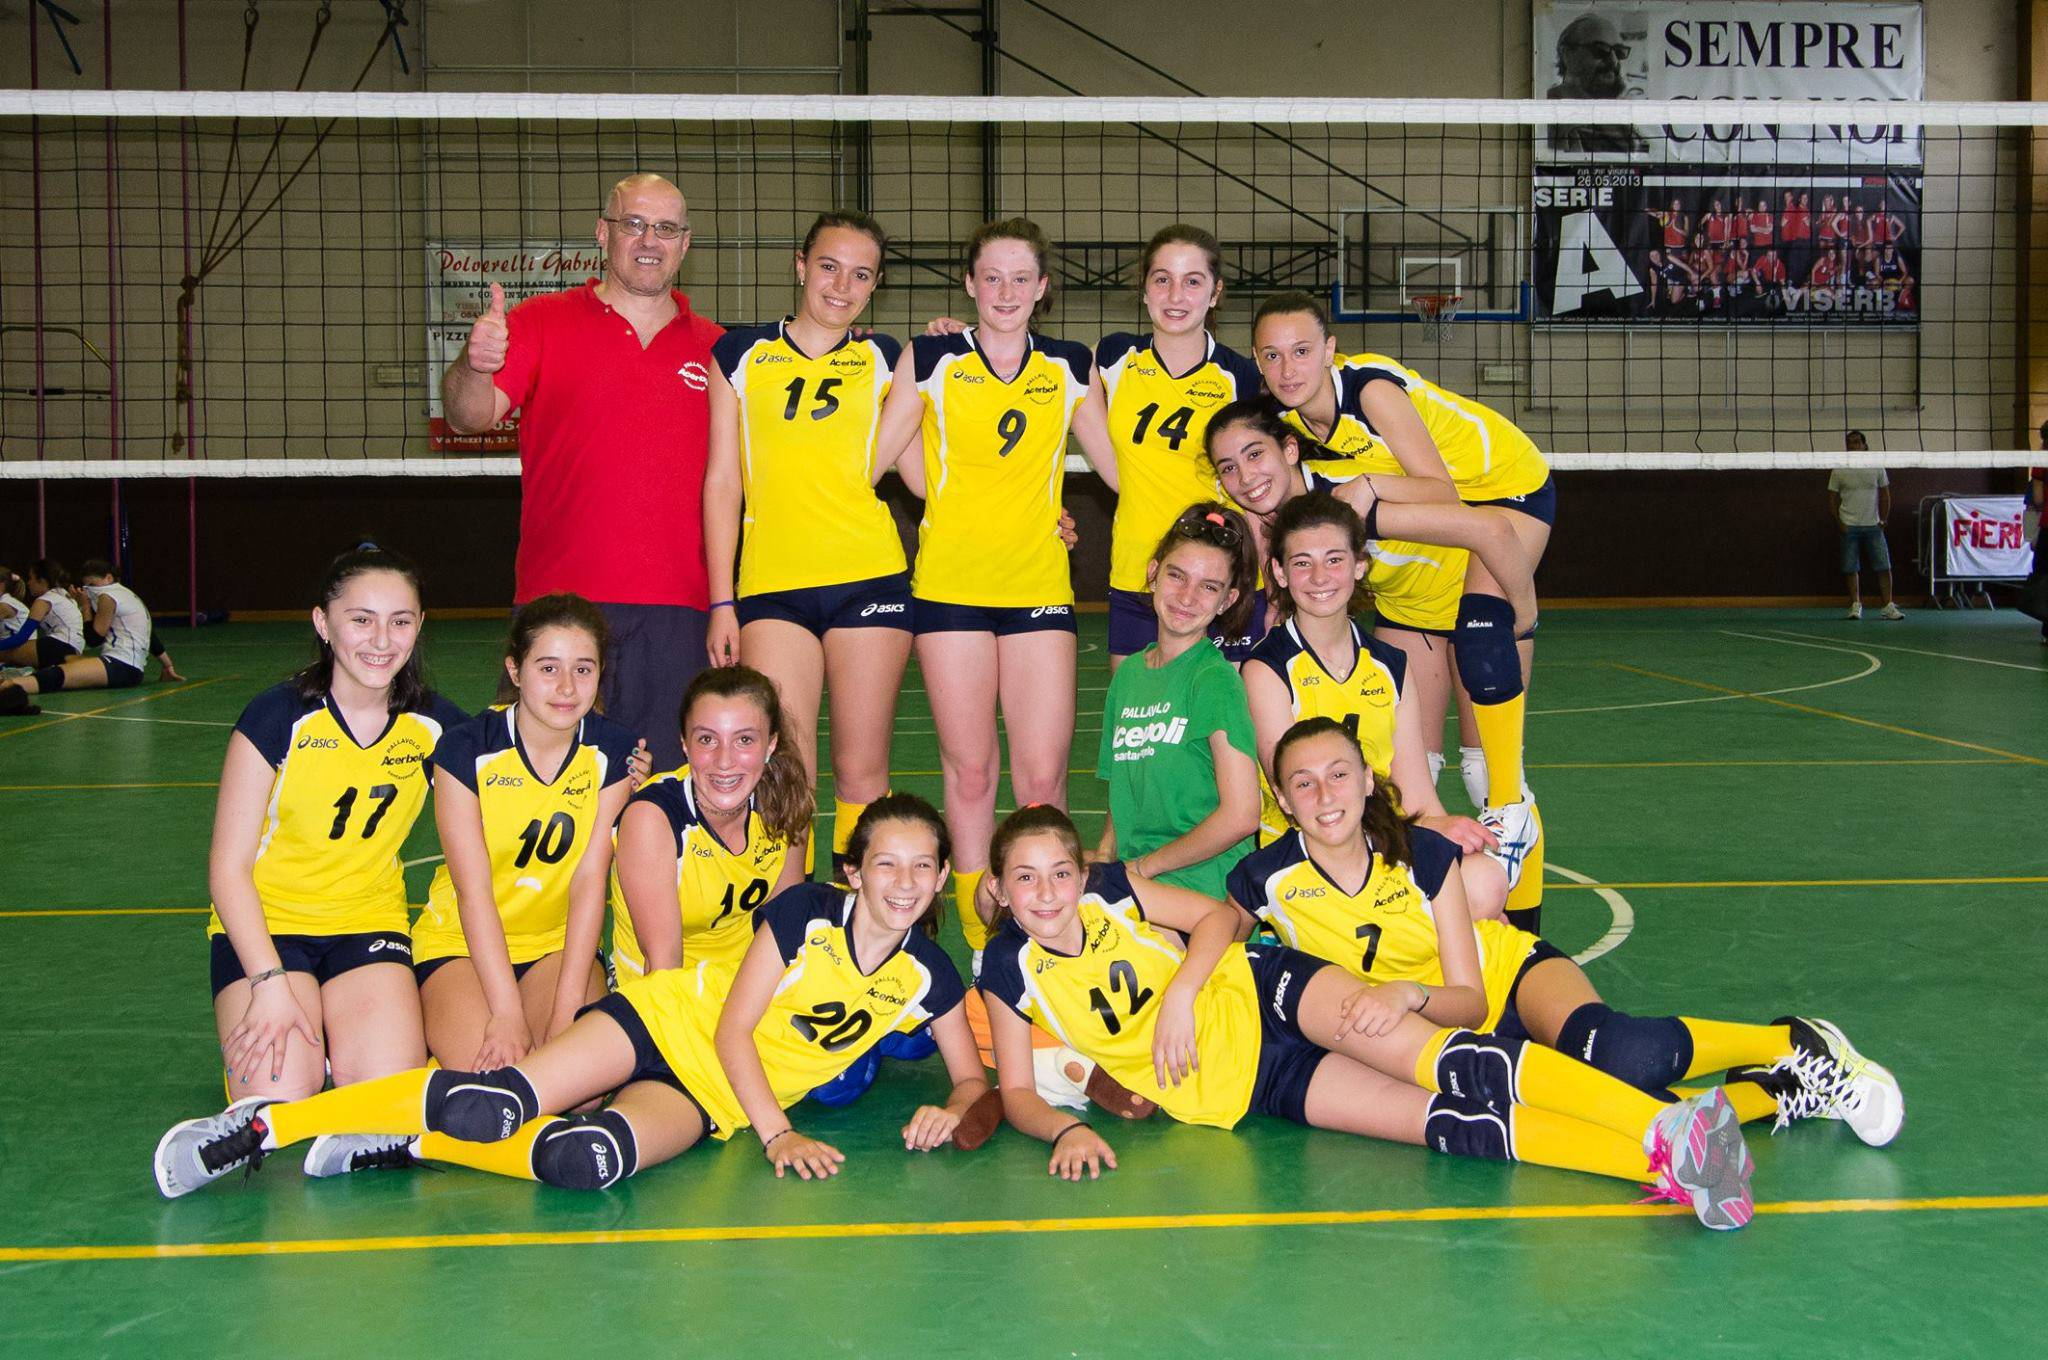 L'Under 13 dell'Acerboli Volley ASD